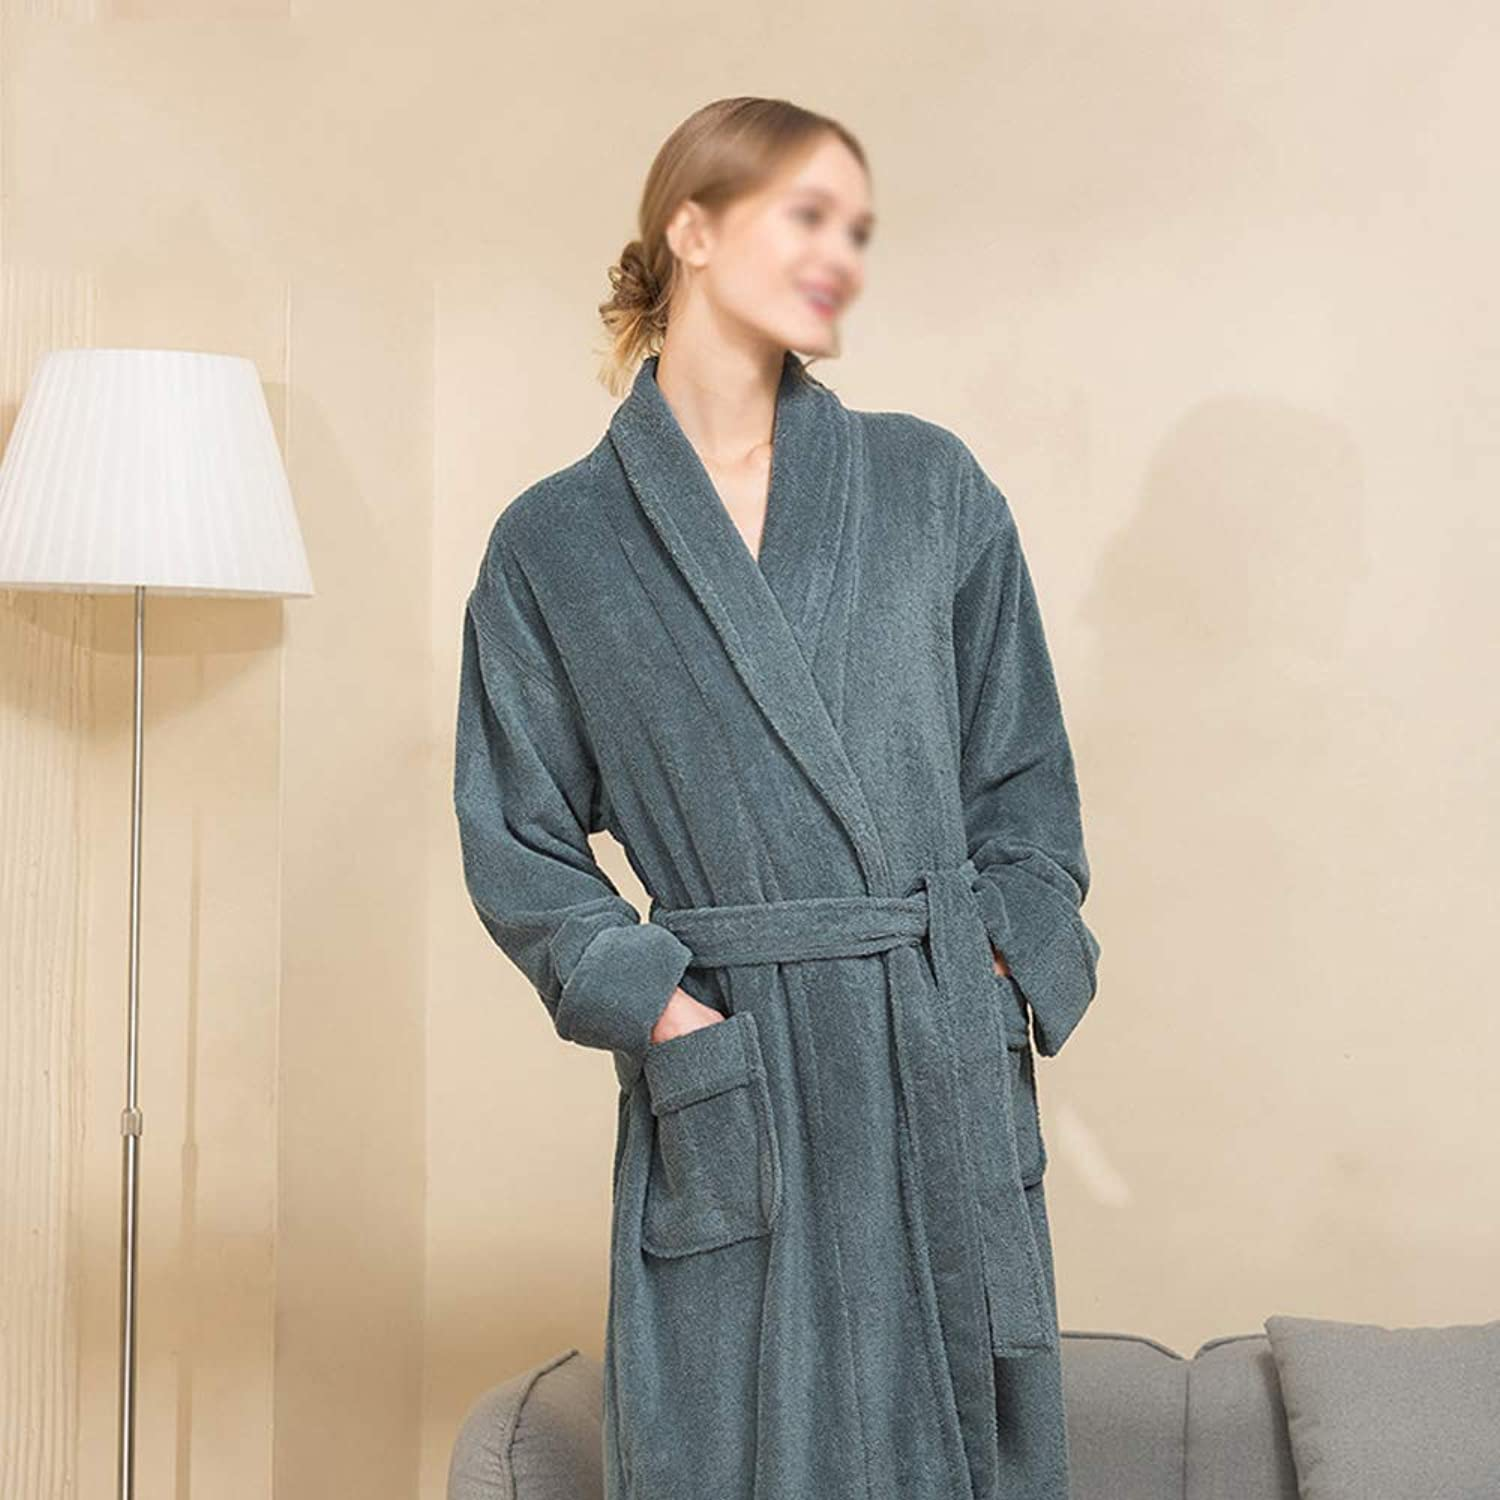 Extra Long Bathrobes, Women's Men's Cotton Towels Thickening Bathroom Robes Hotel Couple Nightgown